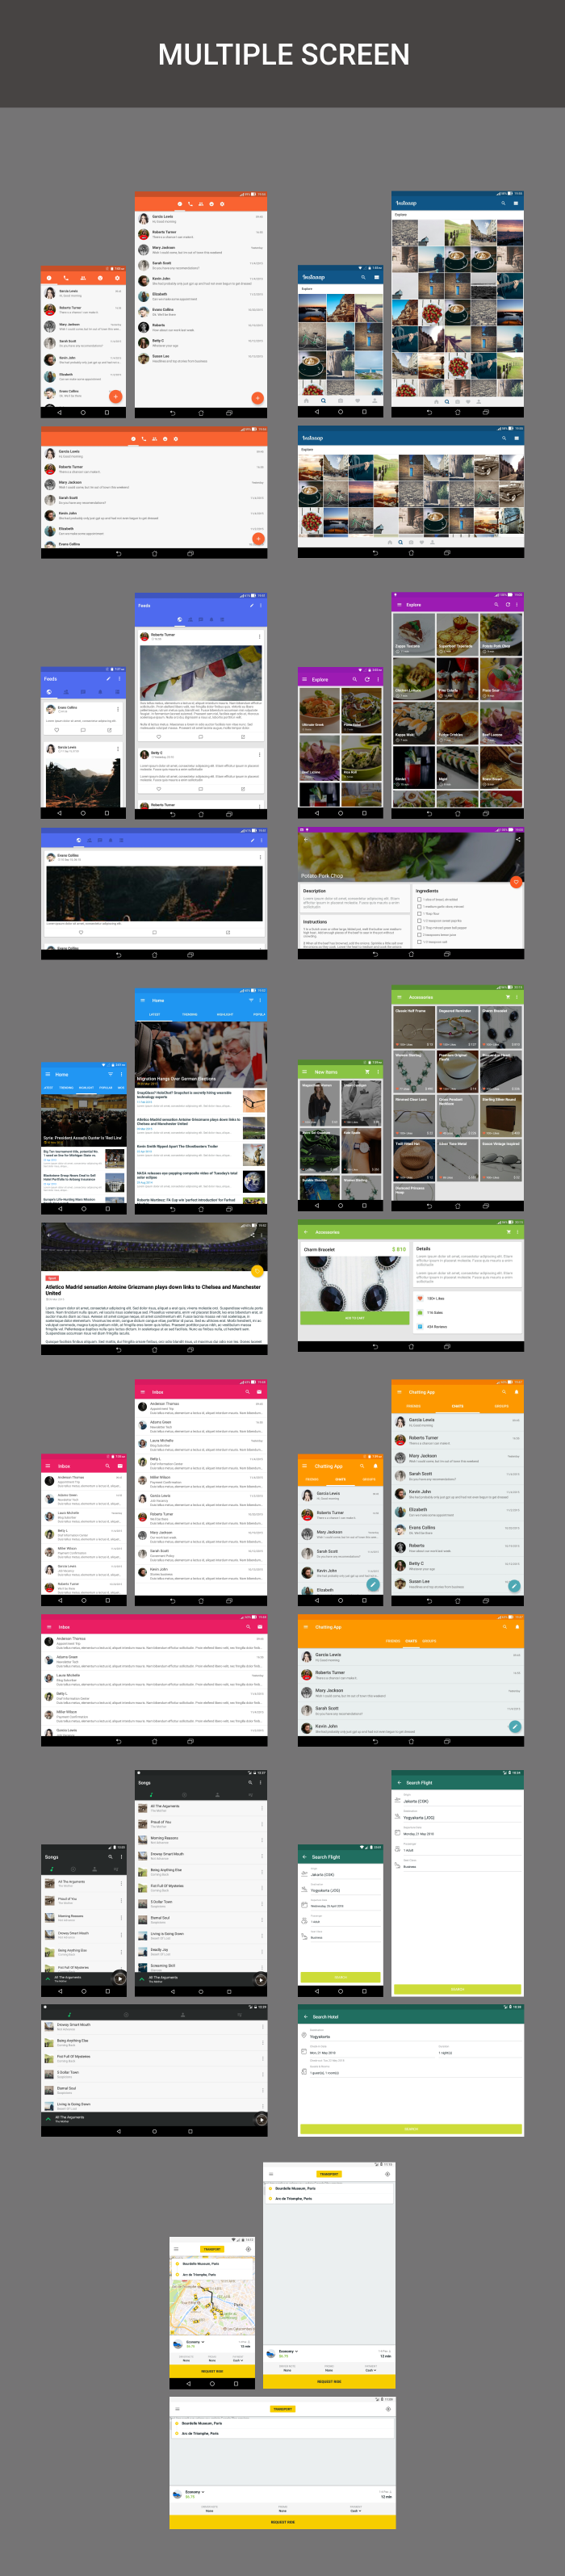 Android material ui template 40 by dreamspace codecanyon keyword material design android template material design android sample material design flat ui simple ui material android google material design maxwellsz